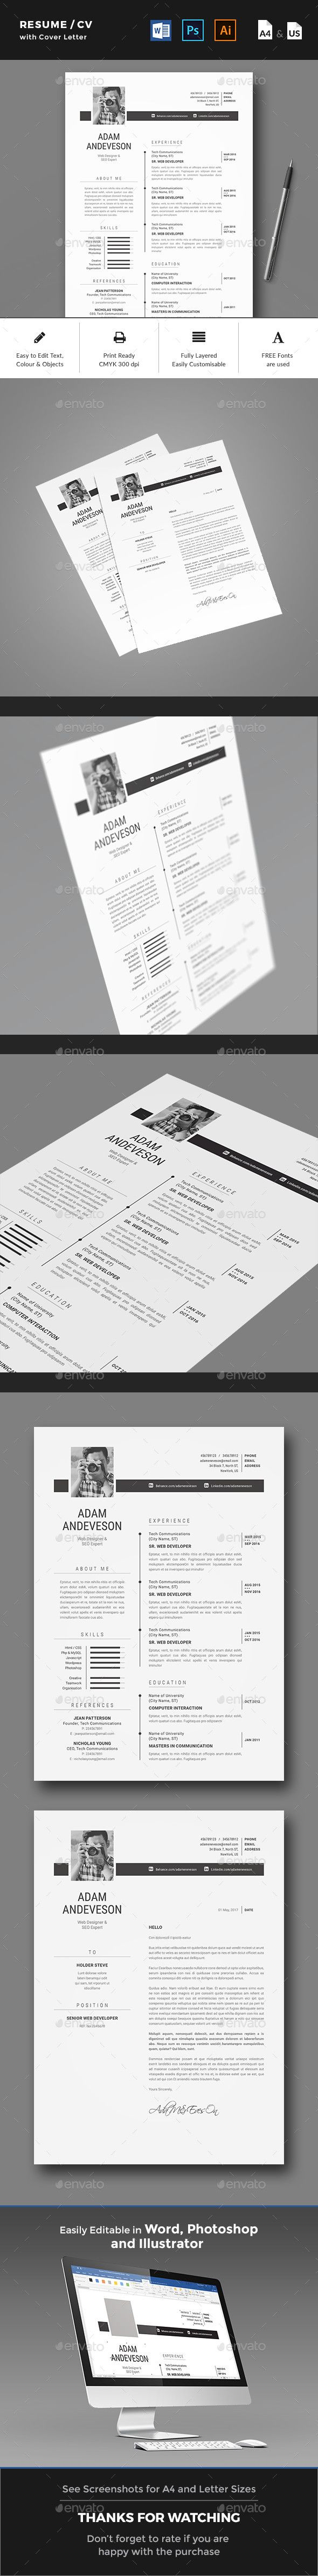 Resume / CV by yellowkyte Resume / CV Template A professional and clean Resume Template with Cover Letter to make a good impression. FEATURESPrint-ready-CMY